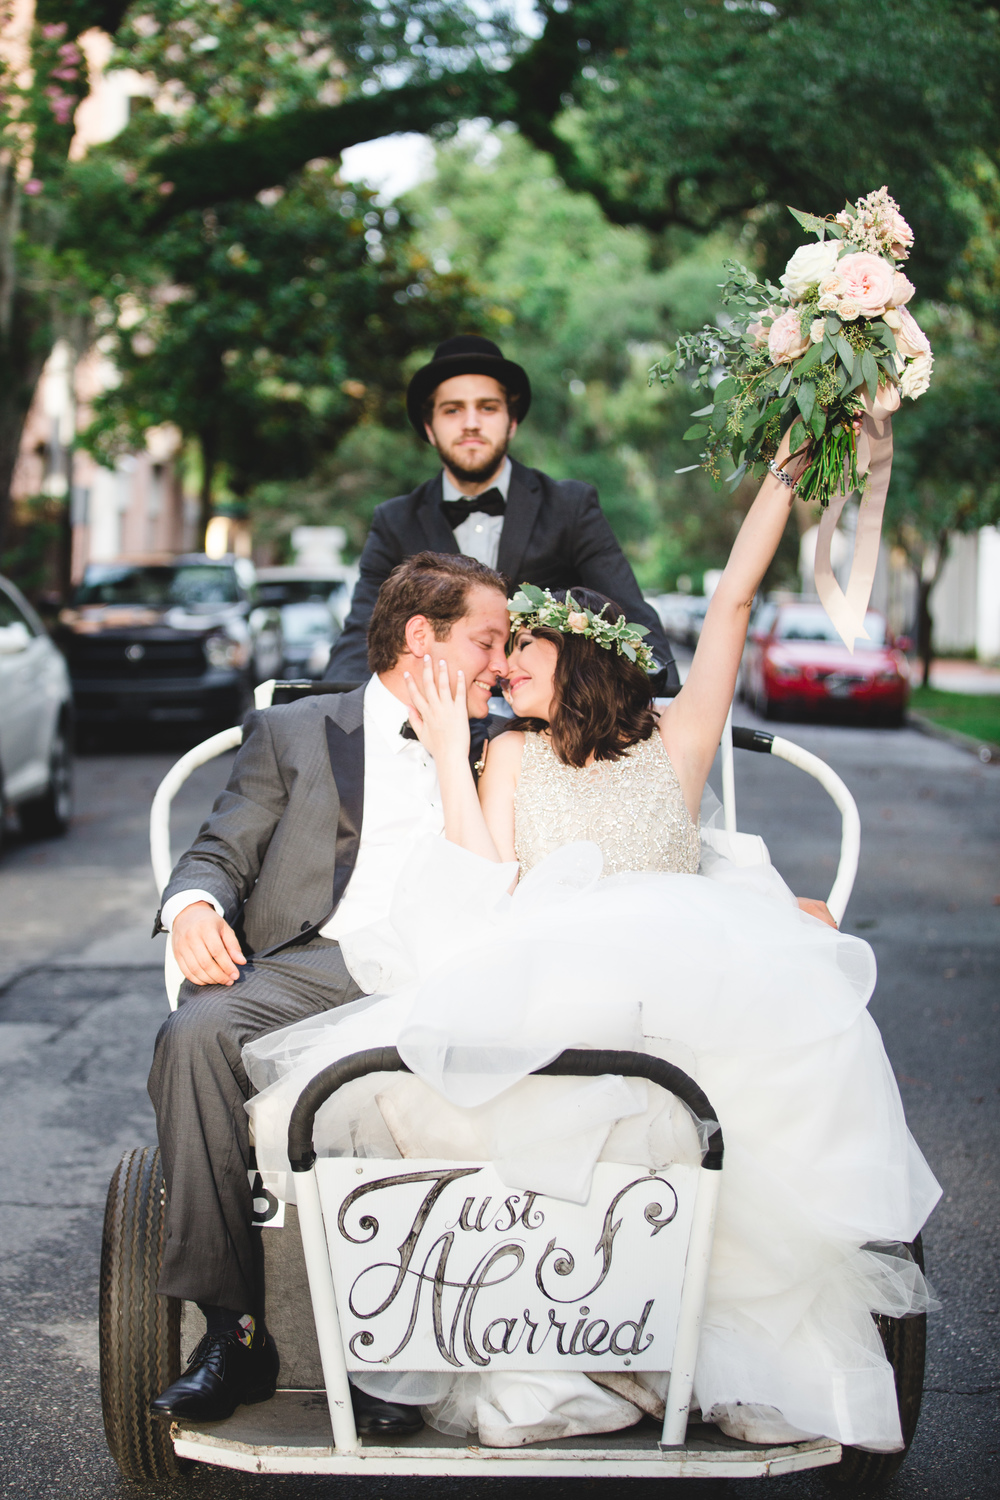 daniela-and-pedro-wedding-izzy-hudgins-photography-a-to-zinnias-whitfield-square-charles-h-morris-center-wedding-ivoyy-and-beau-bridal-boutique-dorie-hayley-paige-savannah-wedding-planner-savannah-bridal-boutique-savannah-weddings-33.jpg